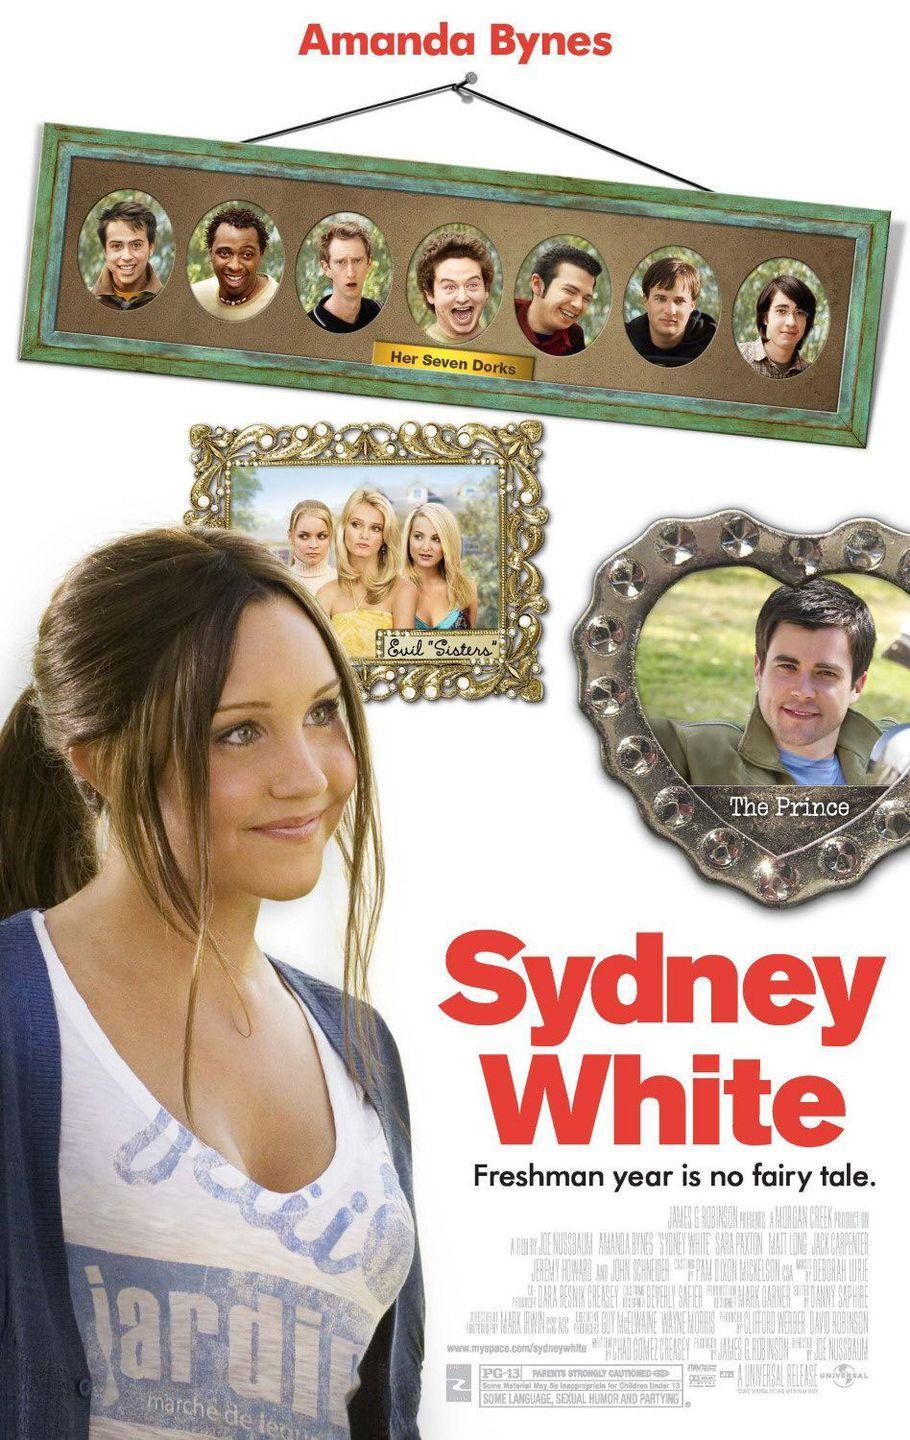 """<p>A college freshman named Sydney White (<strong>Amanda Bynes</strong>) is determined to pledge for her late mother's sorority. Unfortunately, she finds out that the sisterhood is not what it seemed to be, so she joins forces with seven outcasts to take over the student government and make change. As you could probably guess from the film's title, there are major <em>Snow White</em> vibes throughout the flick, so look forward to that.</p><p><a class=""""link rapid-noclick-resp"""" href=""""https://www.amazon.com/Sydney-White-Amanda-Bynes/dp/B0010Z6YOA/ref=sr_1_2?dchild=1&keywords=SYDNEY+WHITE&qid=1596922553&sr=8-2&tag=syn-yahoo-20&ascsubtag=%5Bartid%7C10055.g.33513354%5Bsrc%7Cyahoo-us"""" rel=""""nofollow noopener"""" target=""""_blank"""" data-ylk=""""slk:WATCH NOW"""">WATCH NOW</a></p>"""